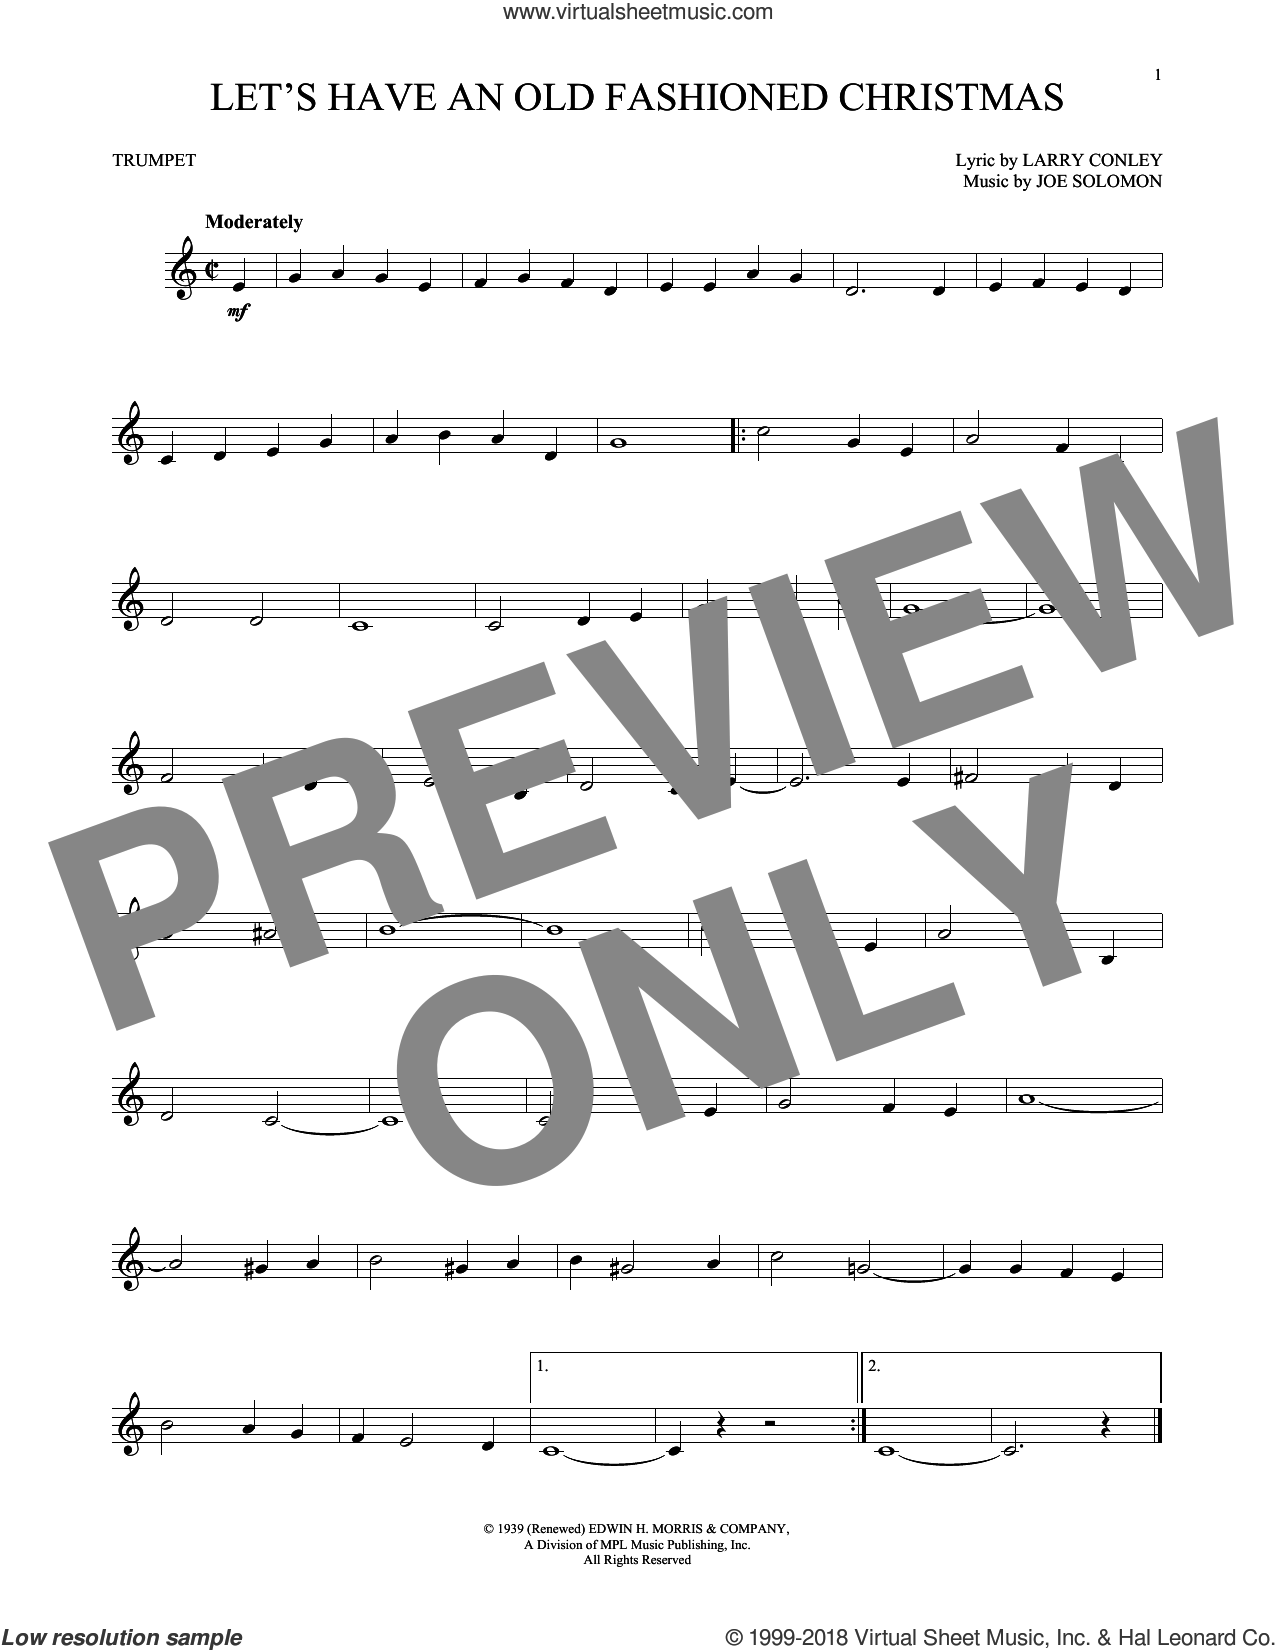 Let's Have An Old Fashioned Christmas sheet music for trumpet solo by Larry Conley and Joe Solomon, intermediate skill level